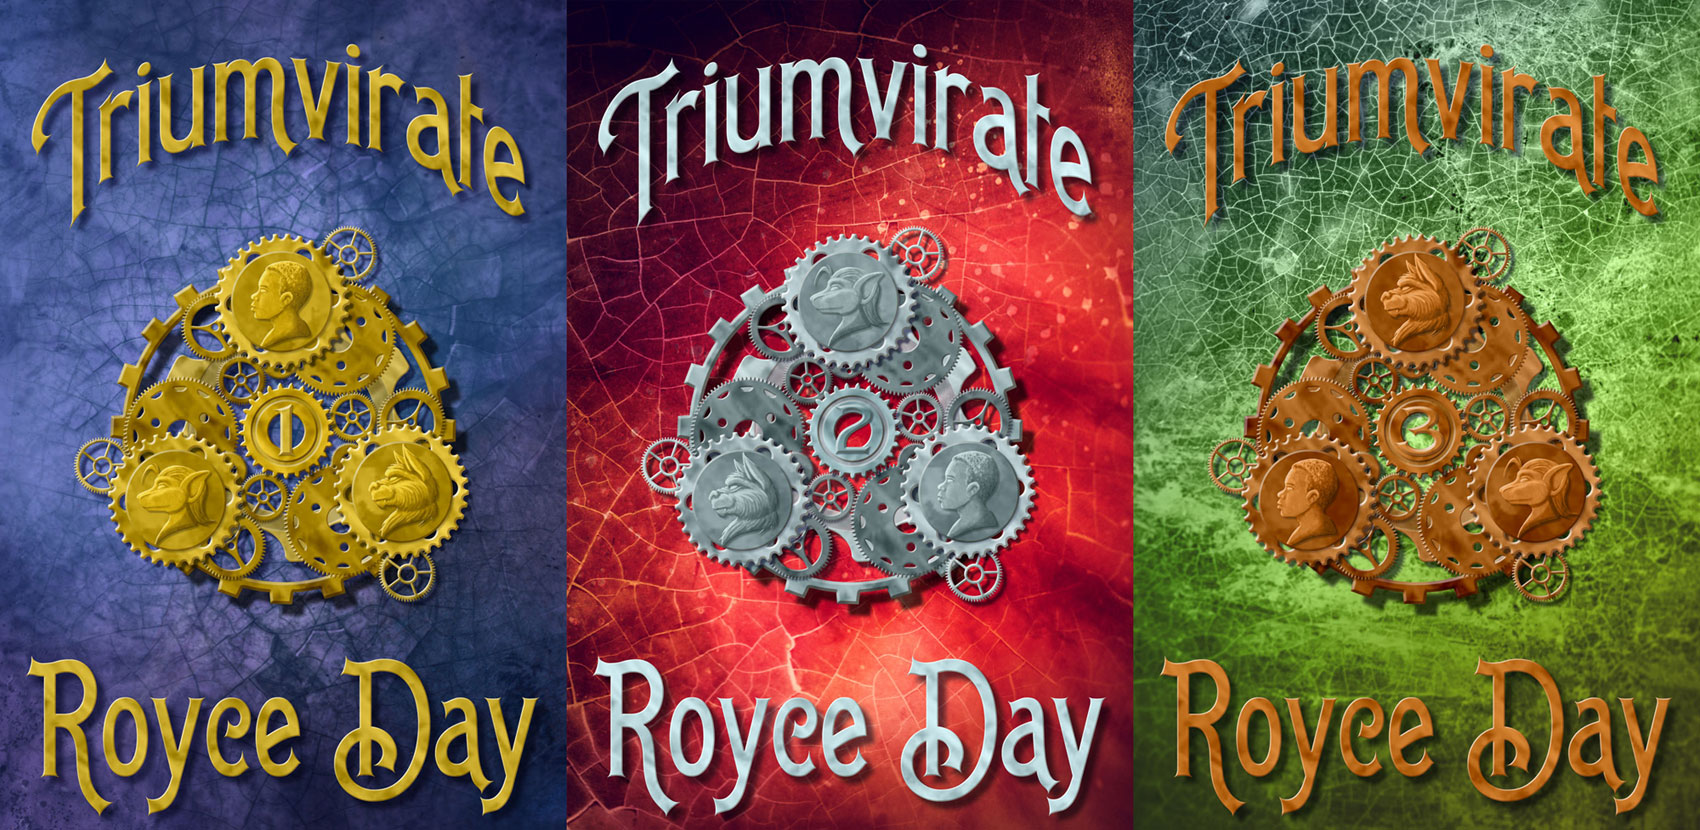 Triumvirate Trilogy - bookcovers